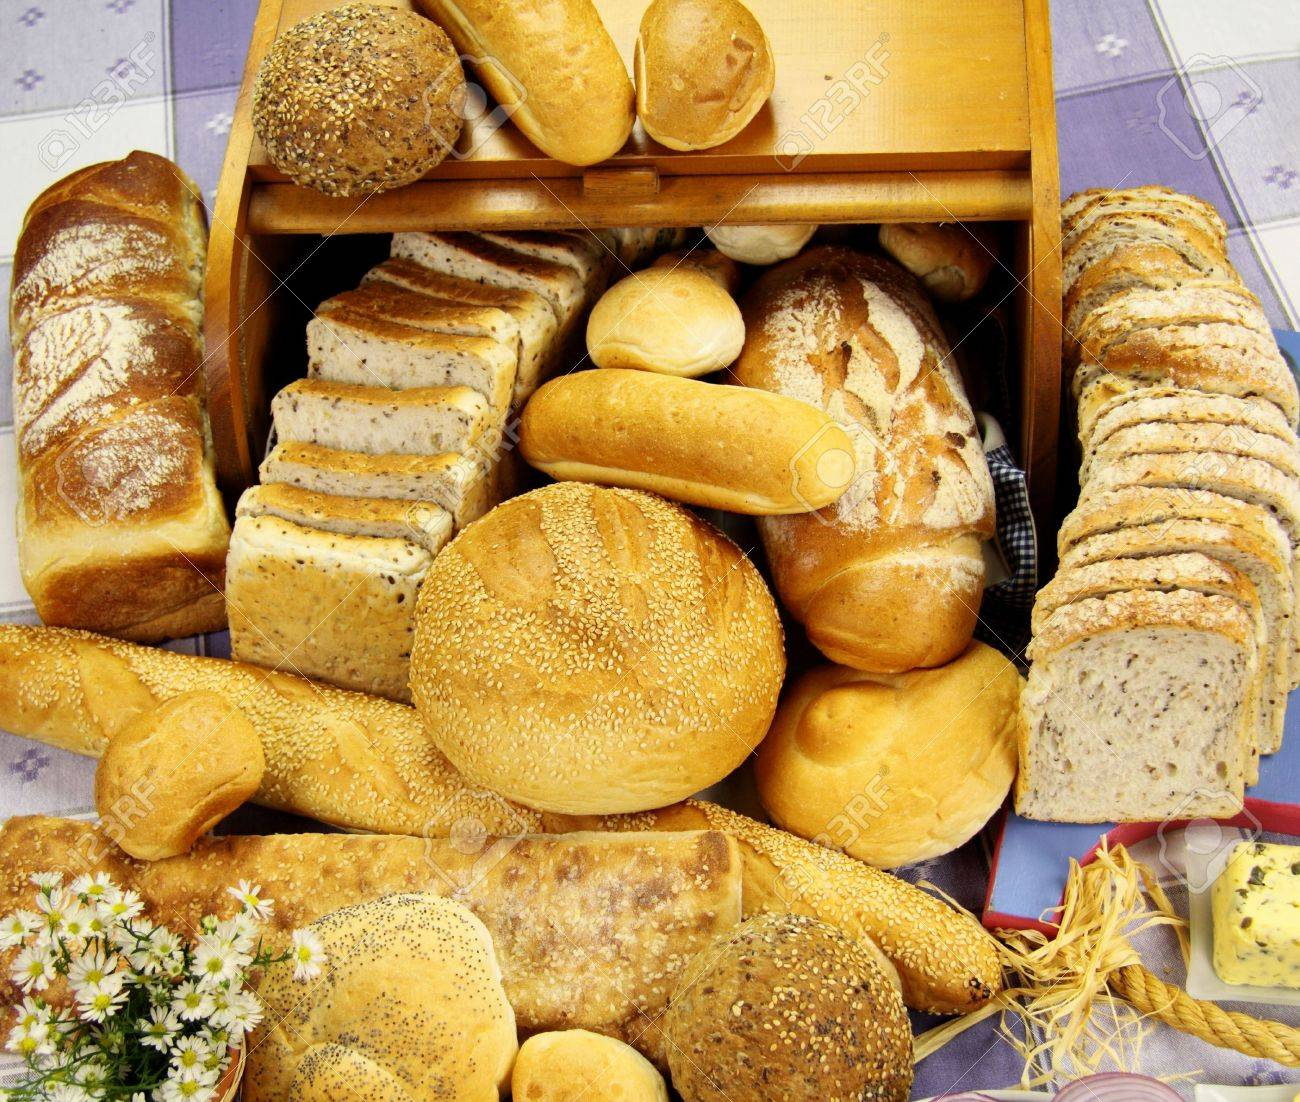 Selection of different types of rolls, loaves and bread sticks. - 5120117